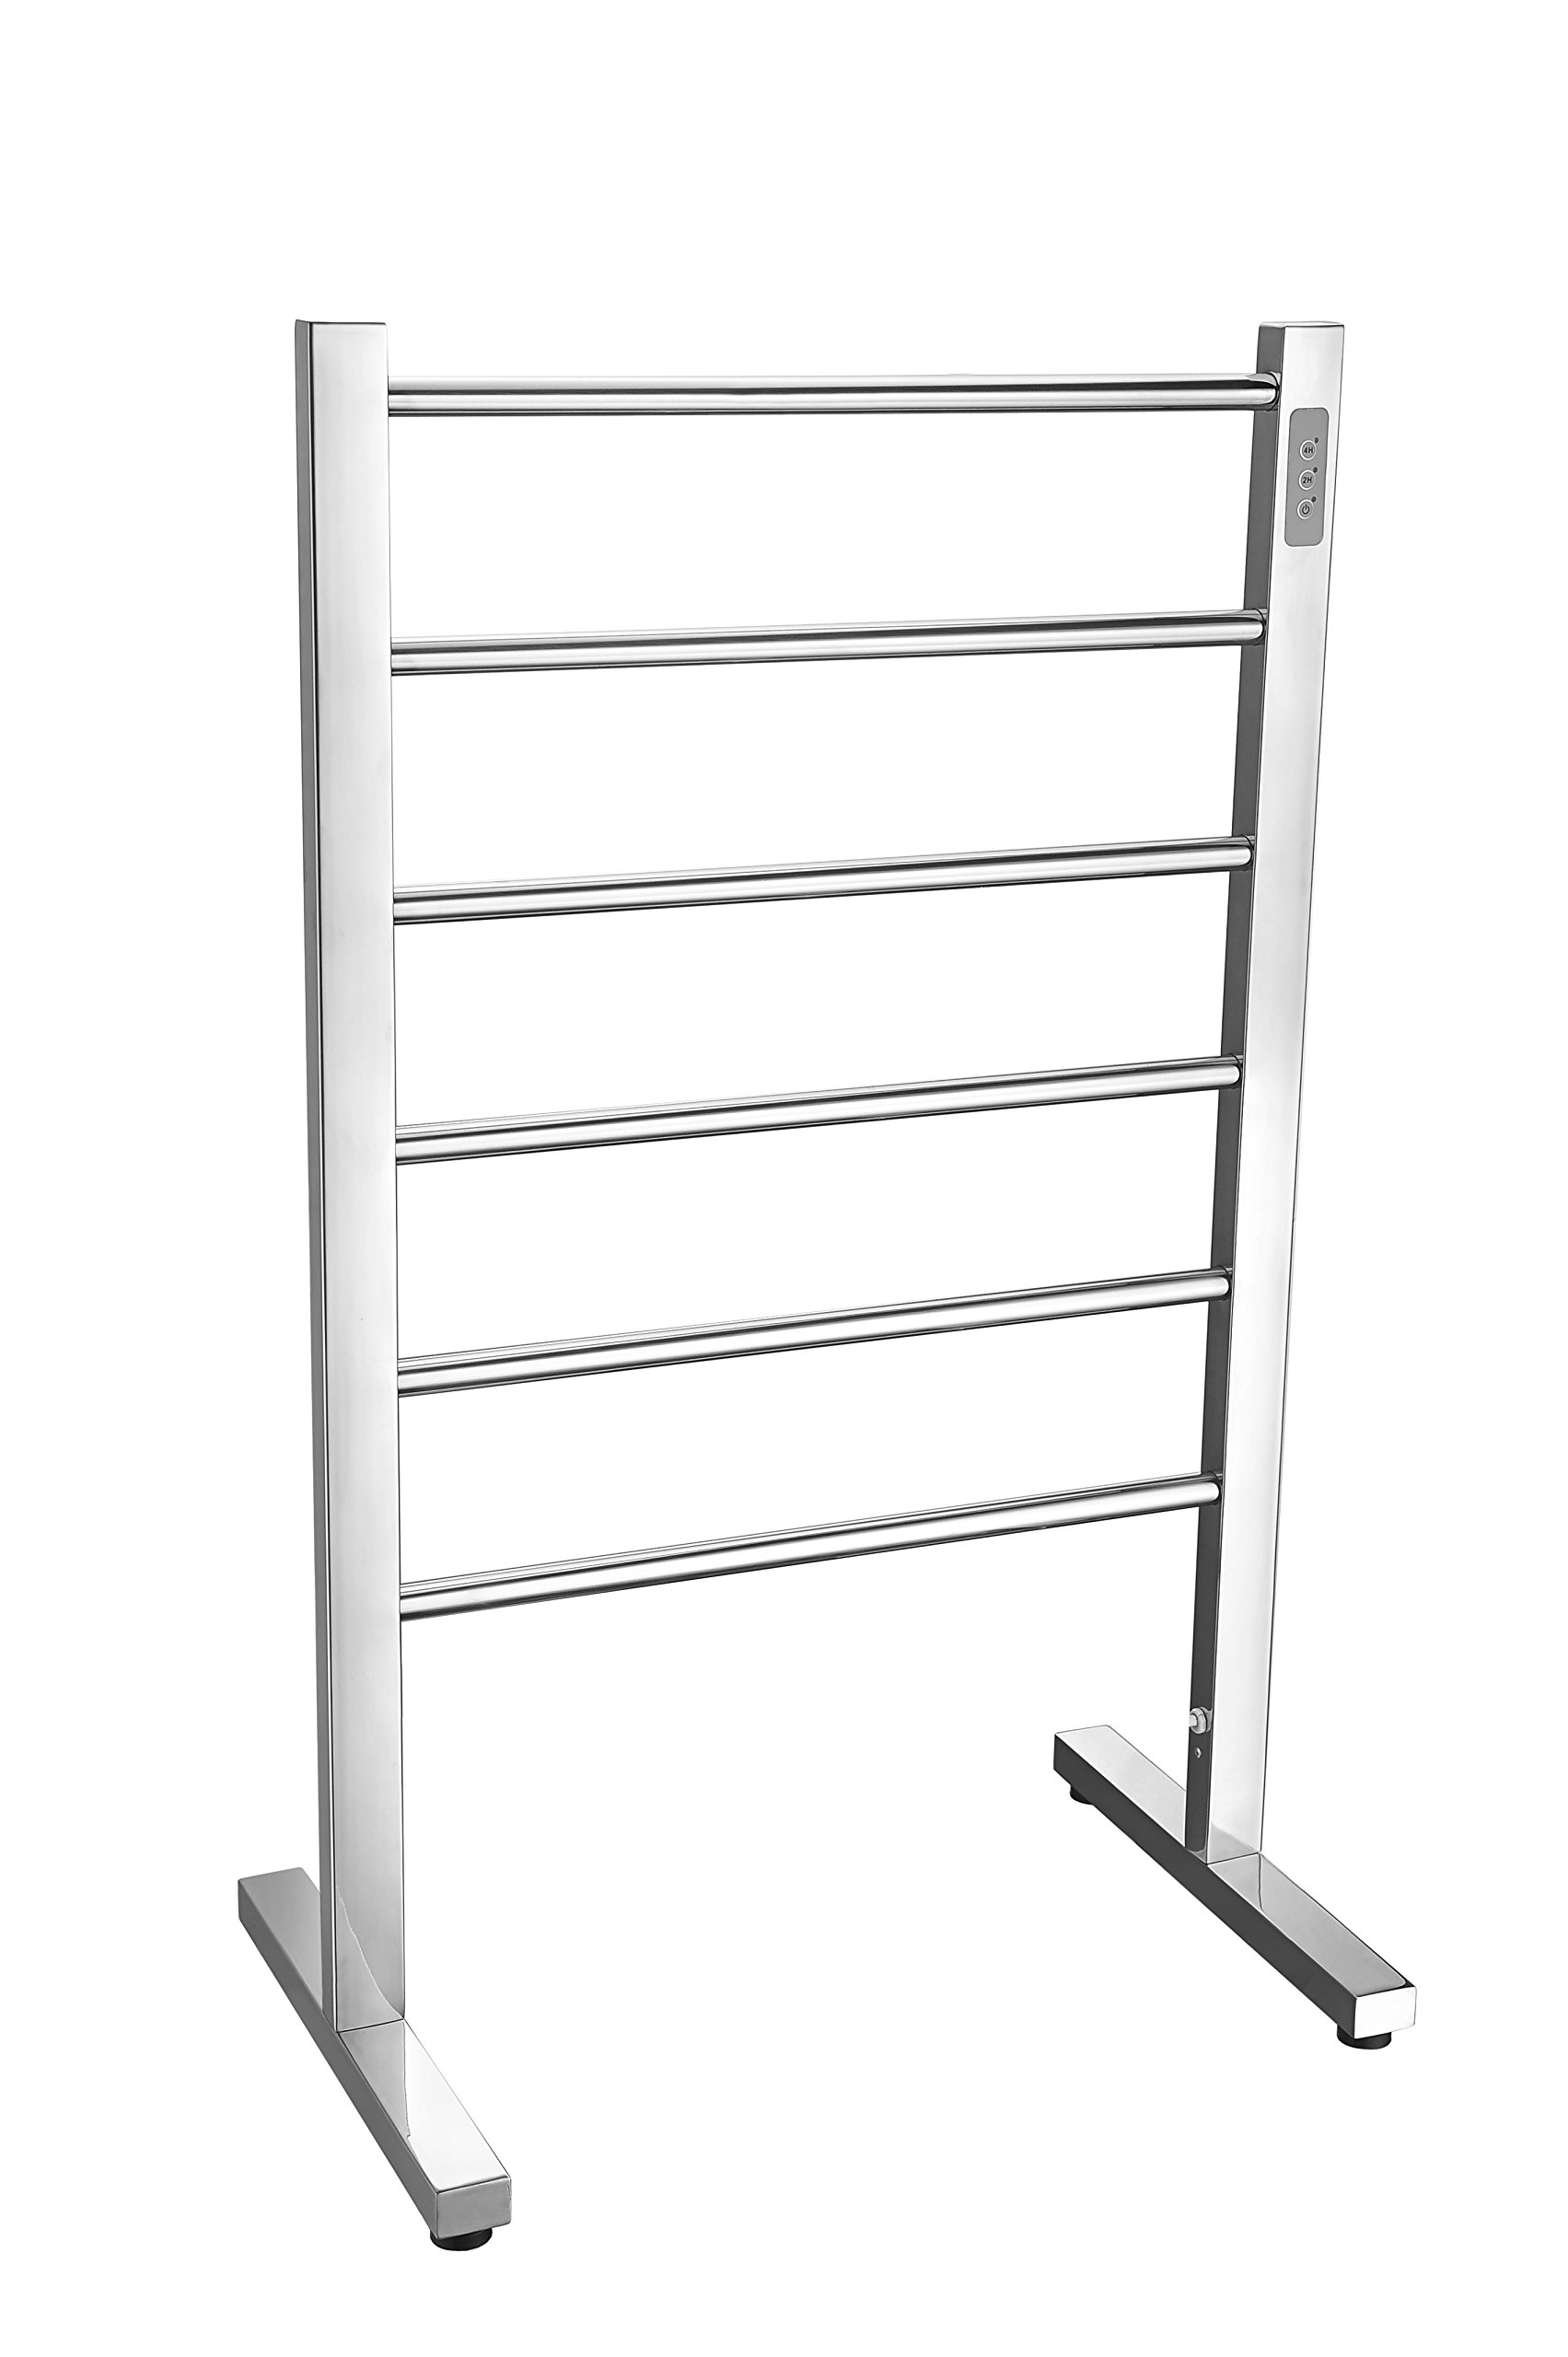 ANZZI Kiln 35 in x 22 in x 14 in Modern 6-Bar Floor Electric Towel Warmer in Polished Chrome | Stainless Steel 65W Timer Heater Tower Drying Rack for Bathrooms and Spa | TW-AZ068CH